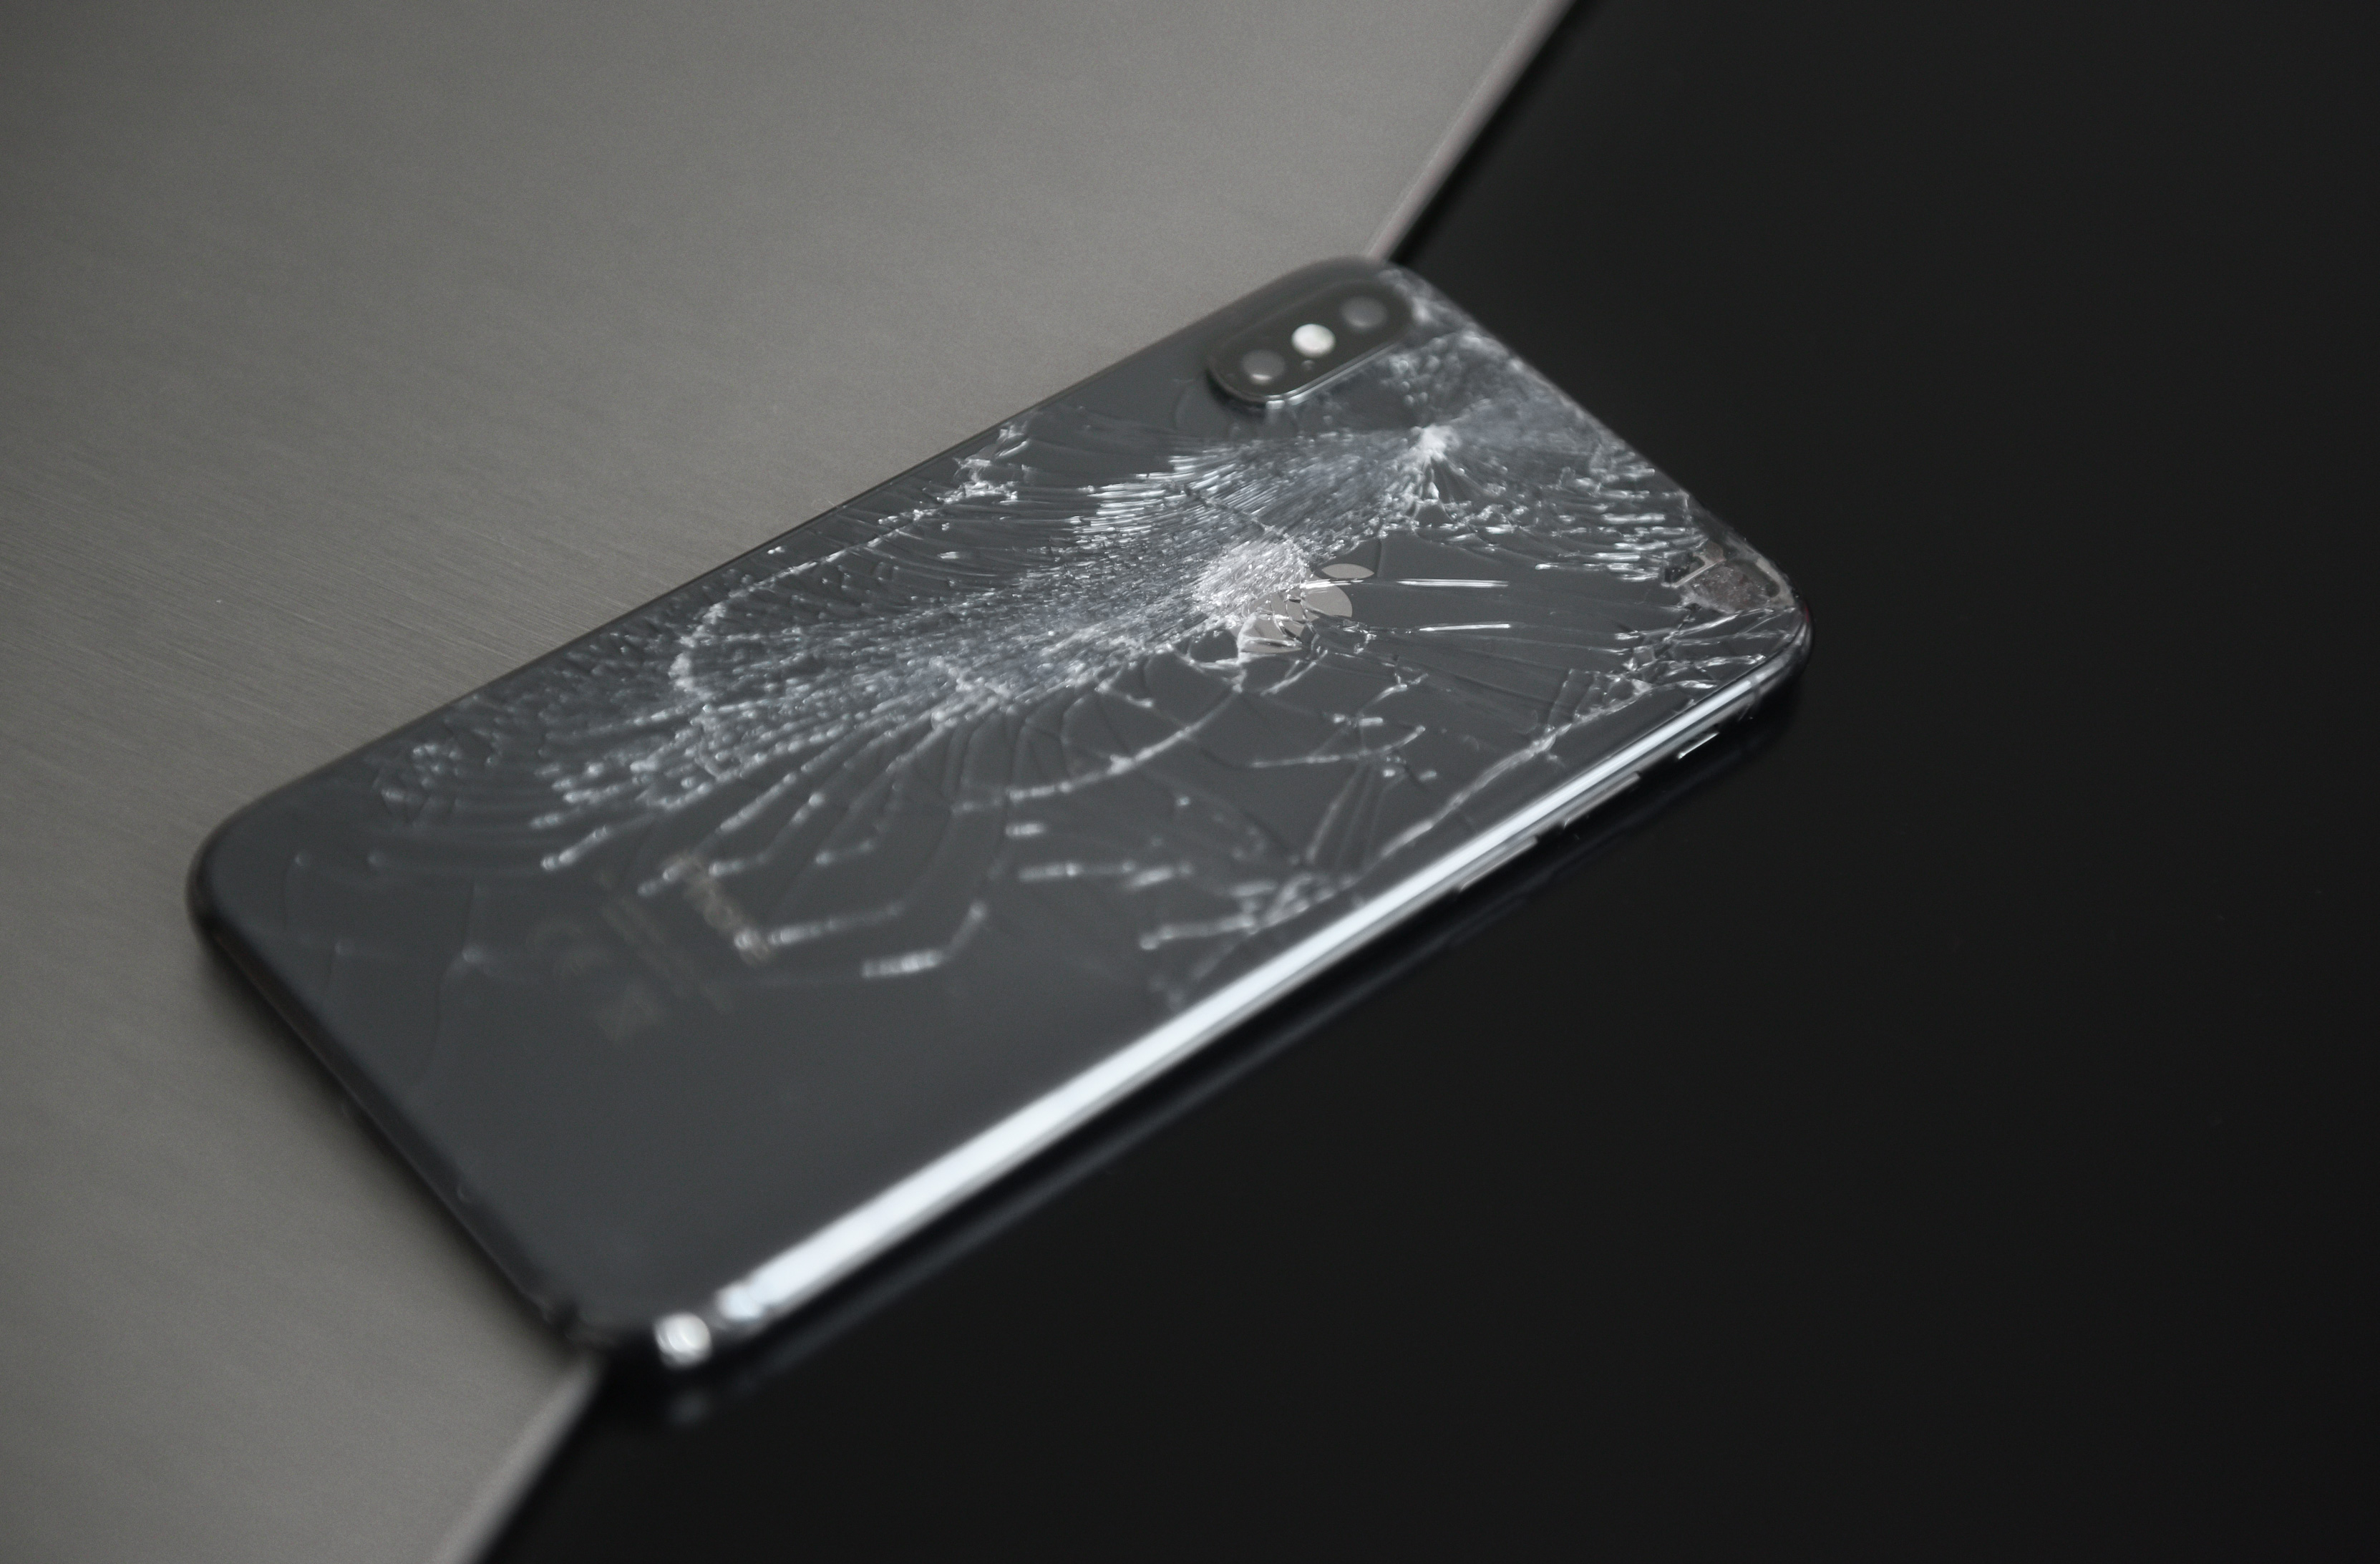 new product 4fd1f ba718 iPhone X Shattered Screen & Other Common Arising Issues